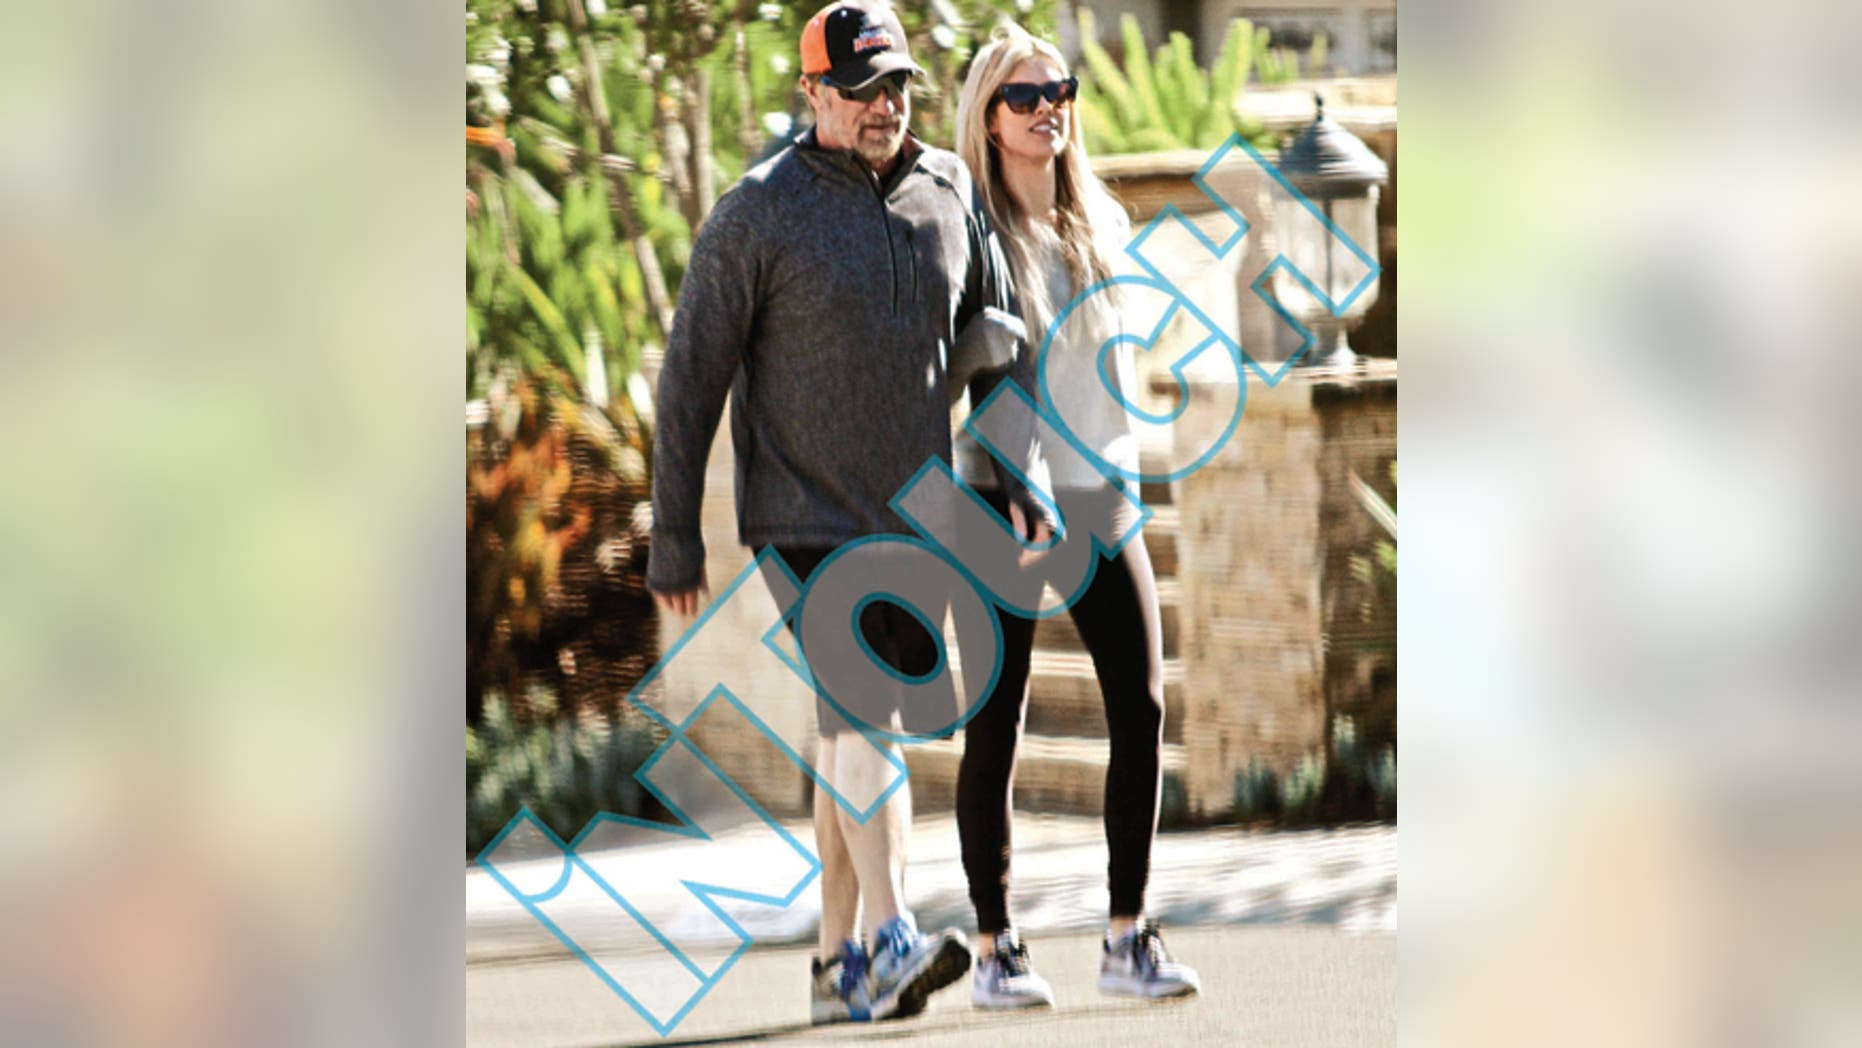 EXCLUSIVE: Christina El Moussa was spotted today walking with a new man. It's the first time the Flip or Flop star has been seen with another man since her divorce from Tarek El Moussa was announced in December. Early reports are that the pair are an item and that the new man's name is Gary. 26 Jan 2017 Pictured: Christina El Moussa, Gary. Photo credit: APEX / MEGA TheMegaAgency.com +1 888 505 6342